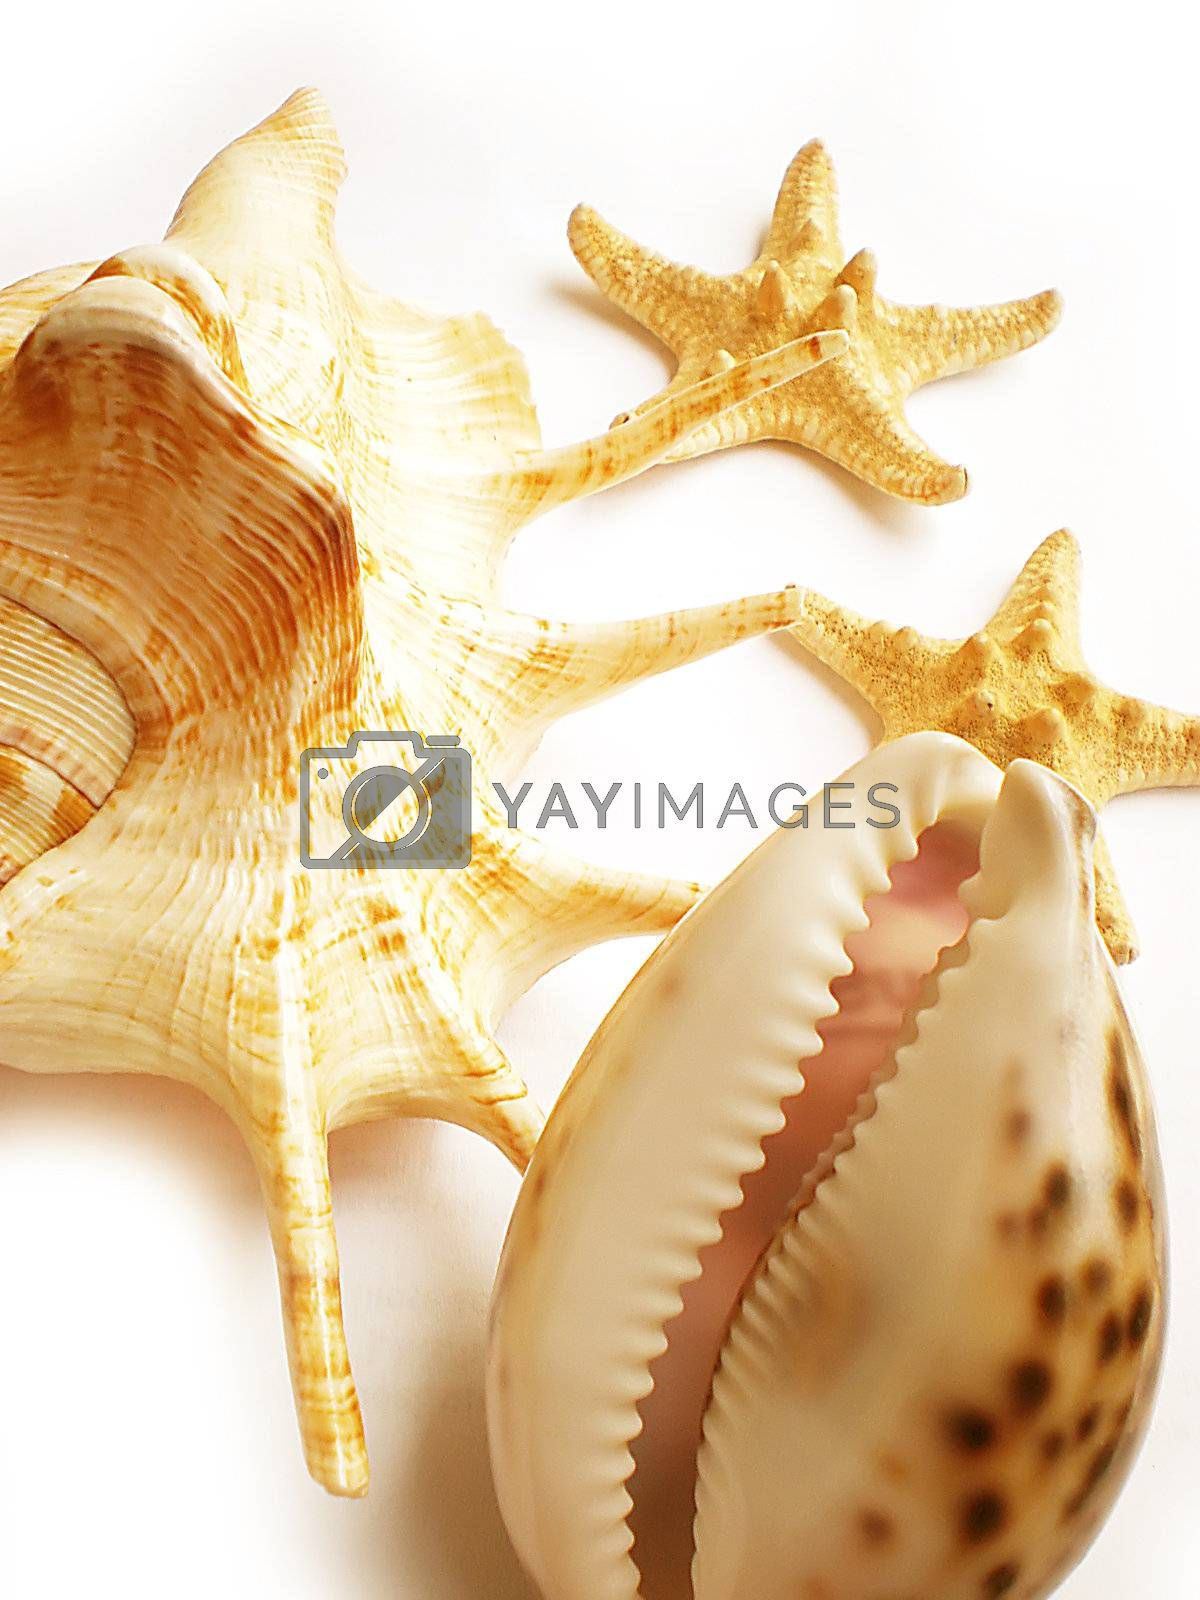 shells by Dessie_bg